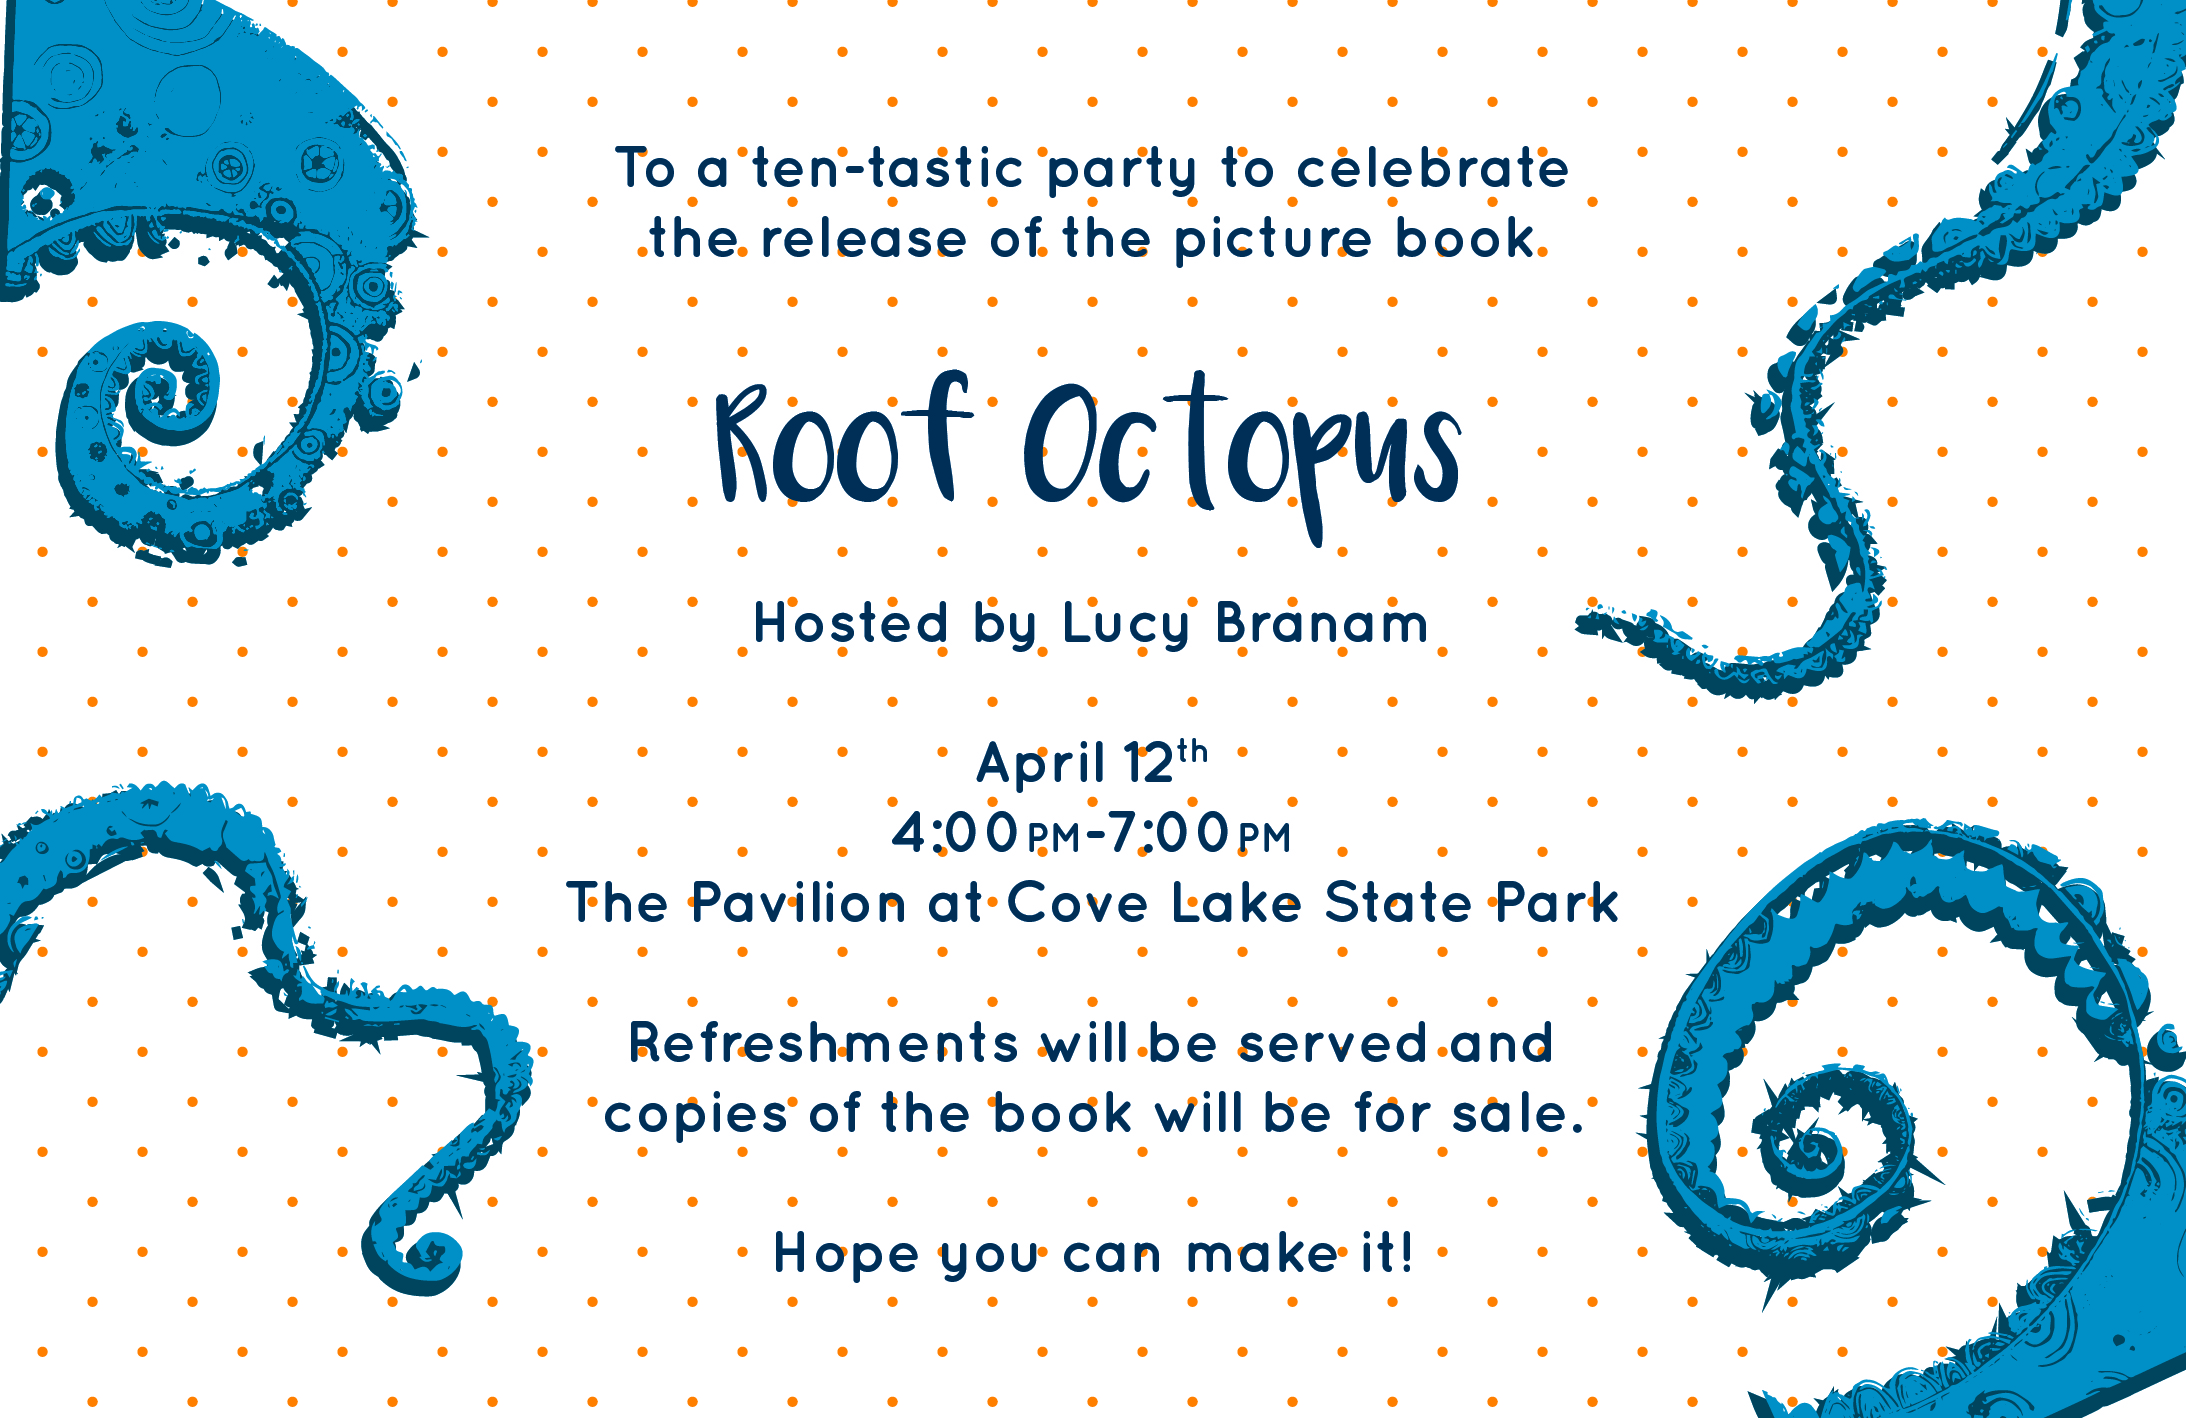 Book Release Party Invitation (Back)